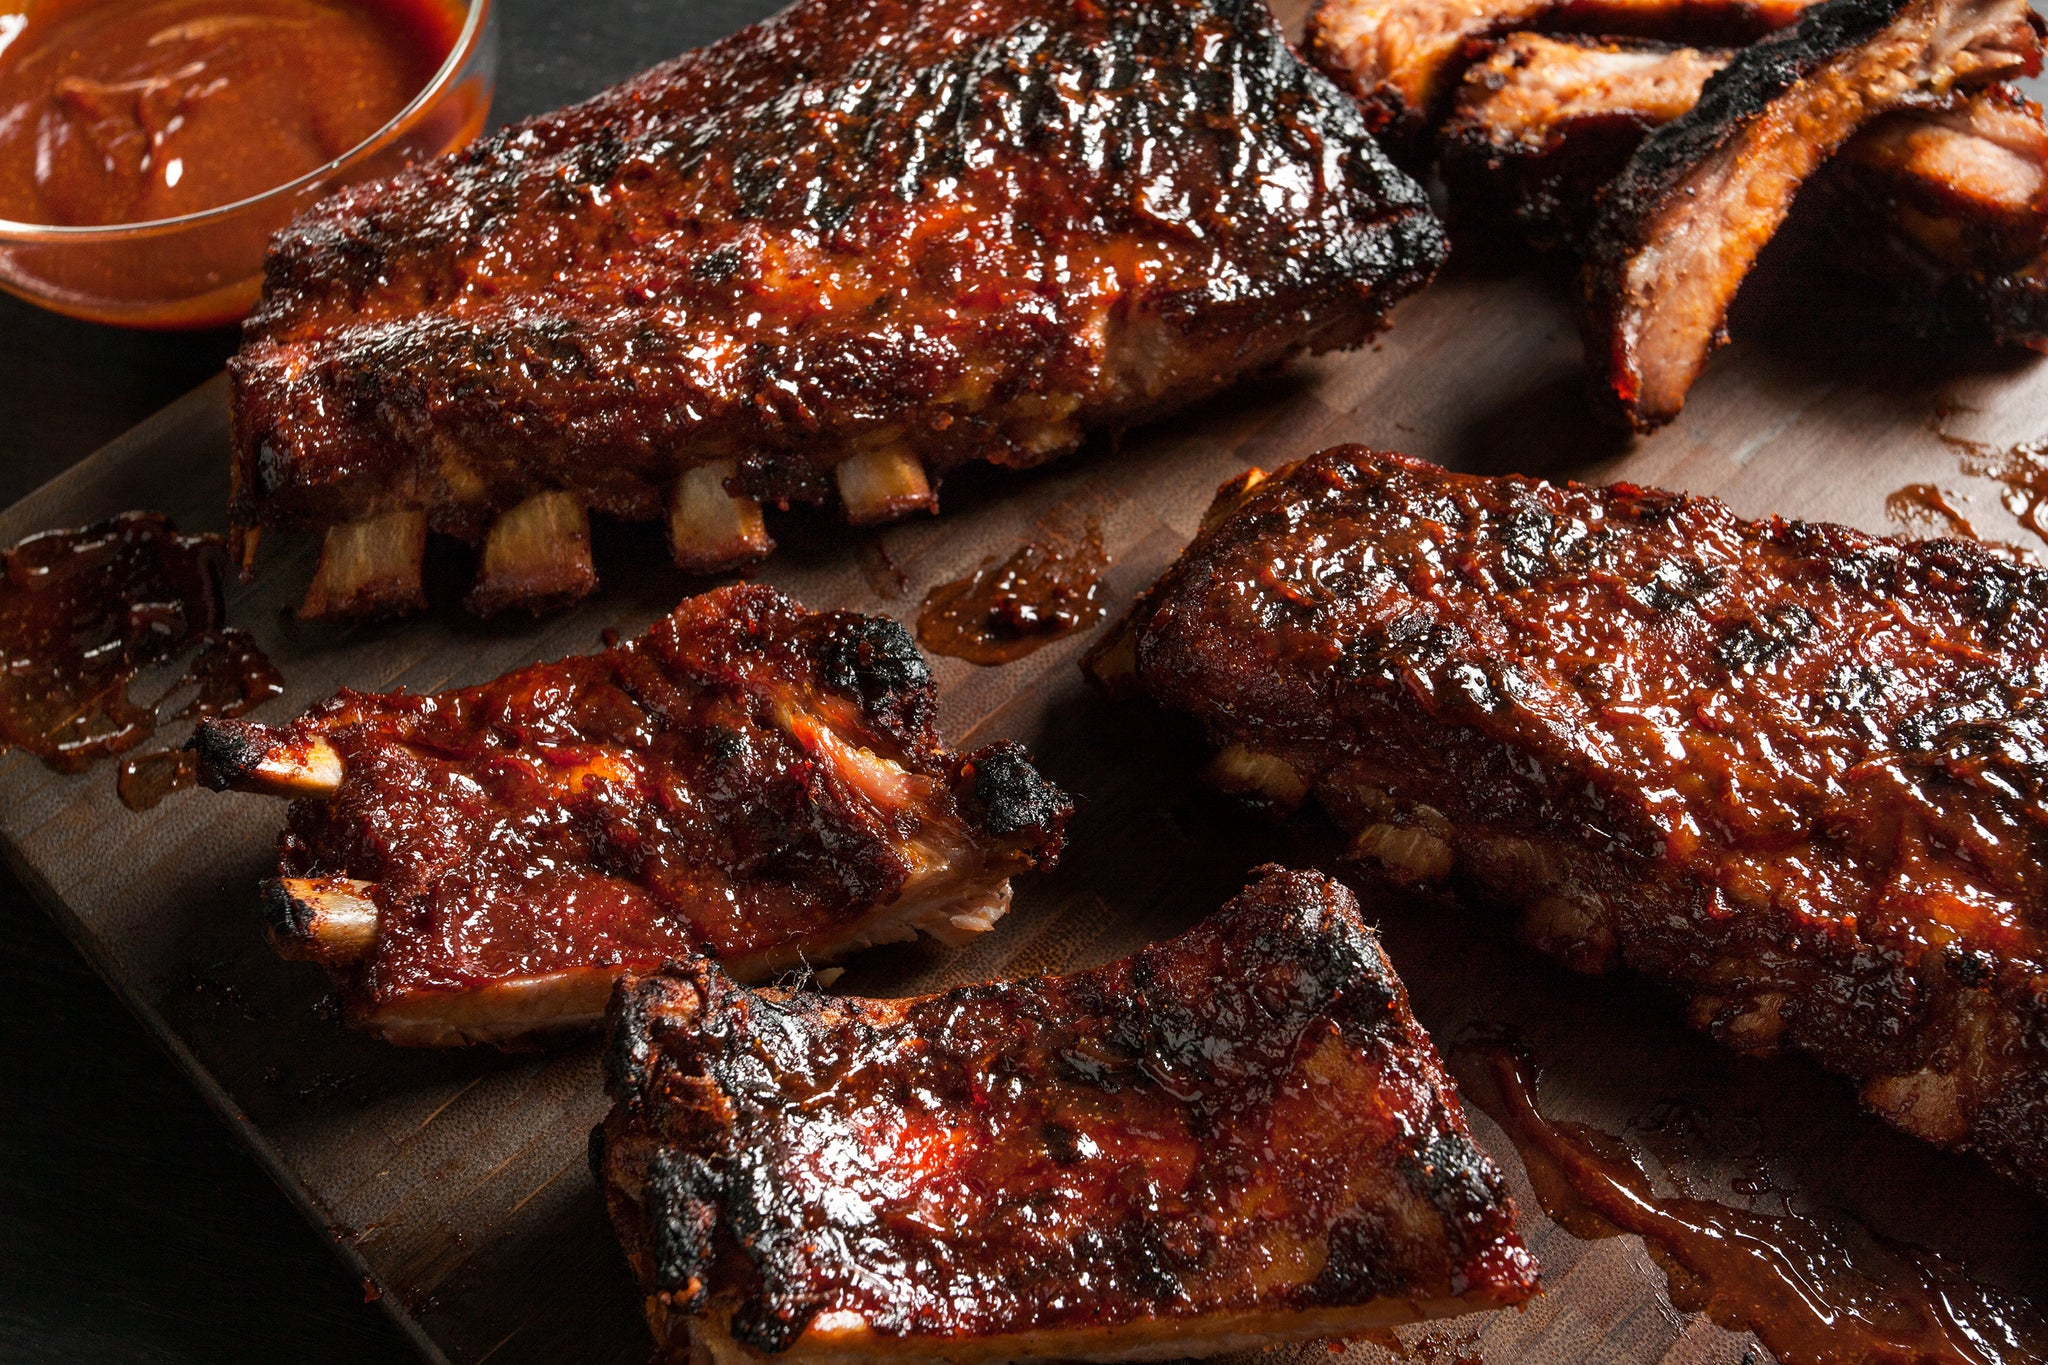 How to Prepare and Cook Barbecue Pork Ribs